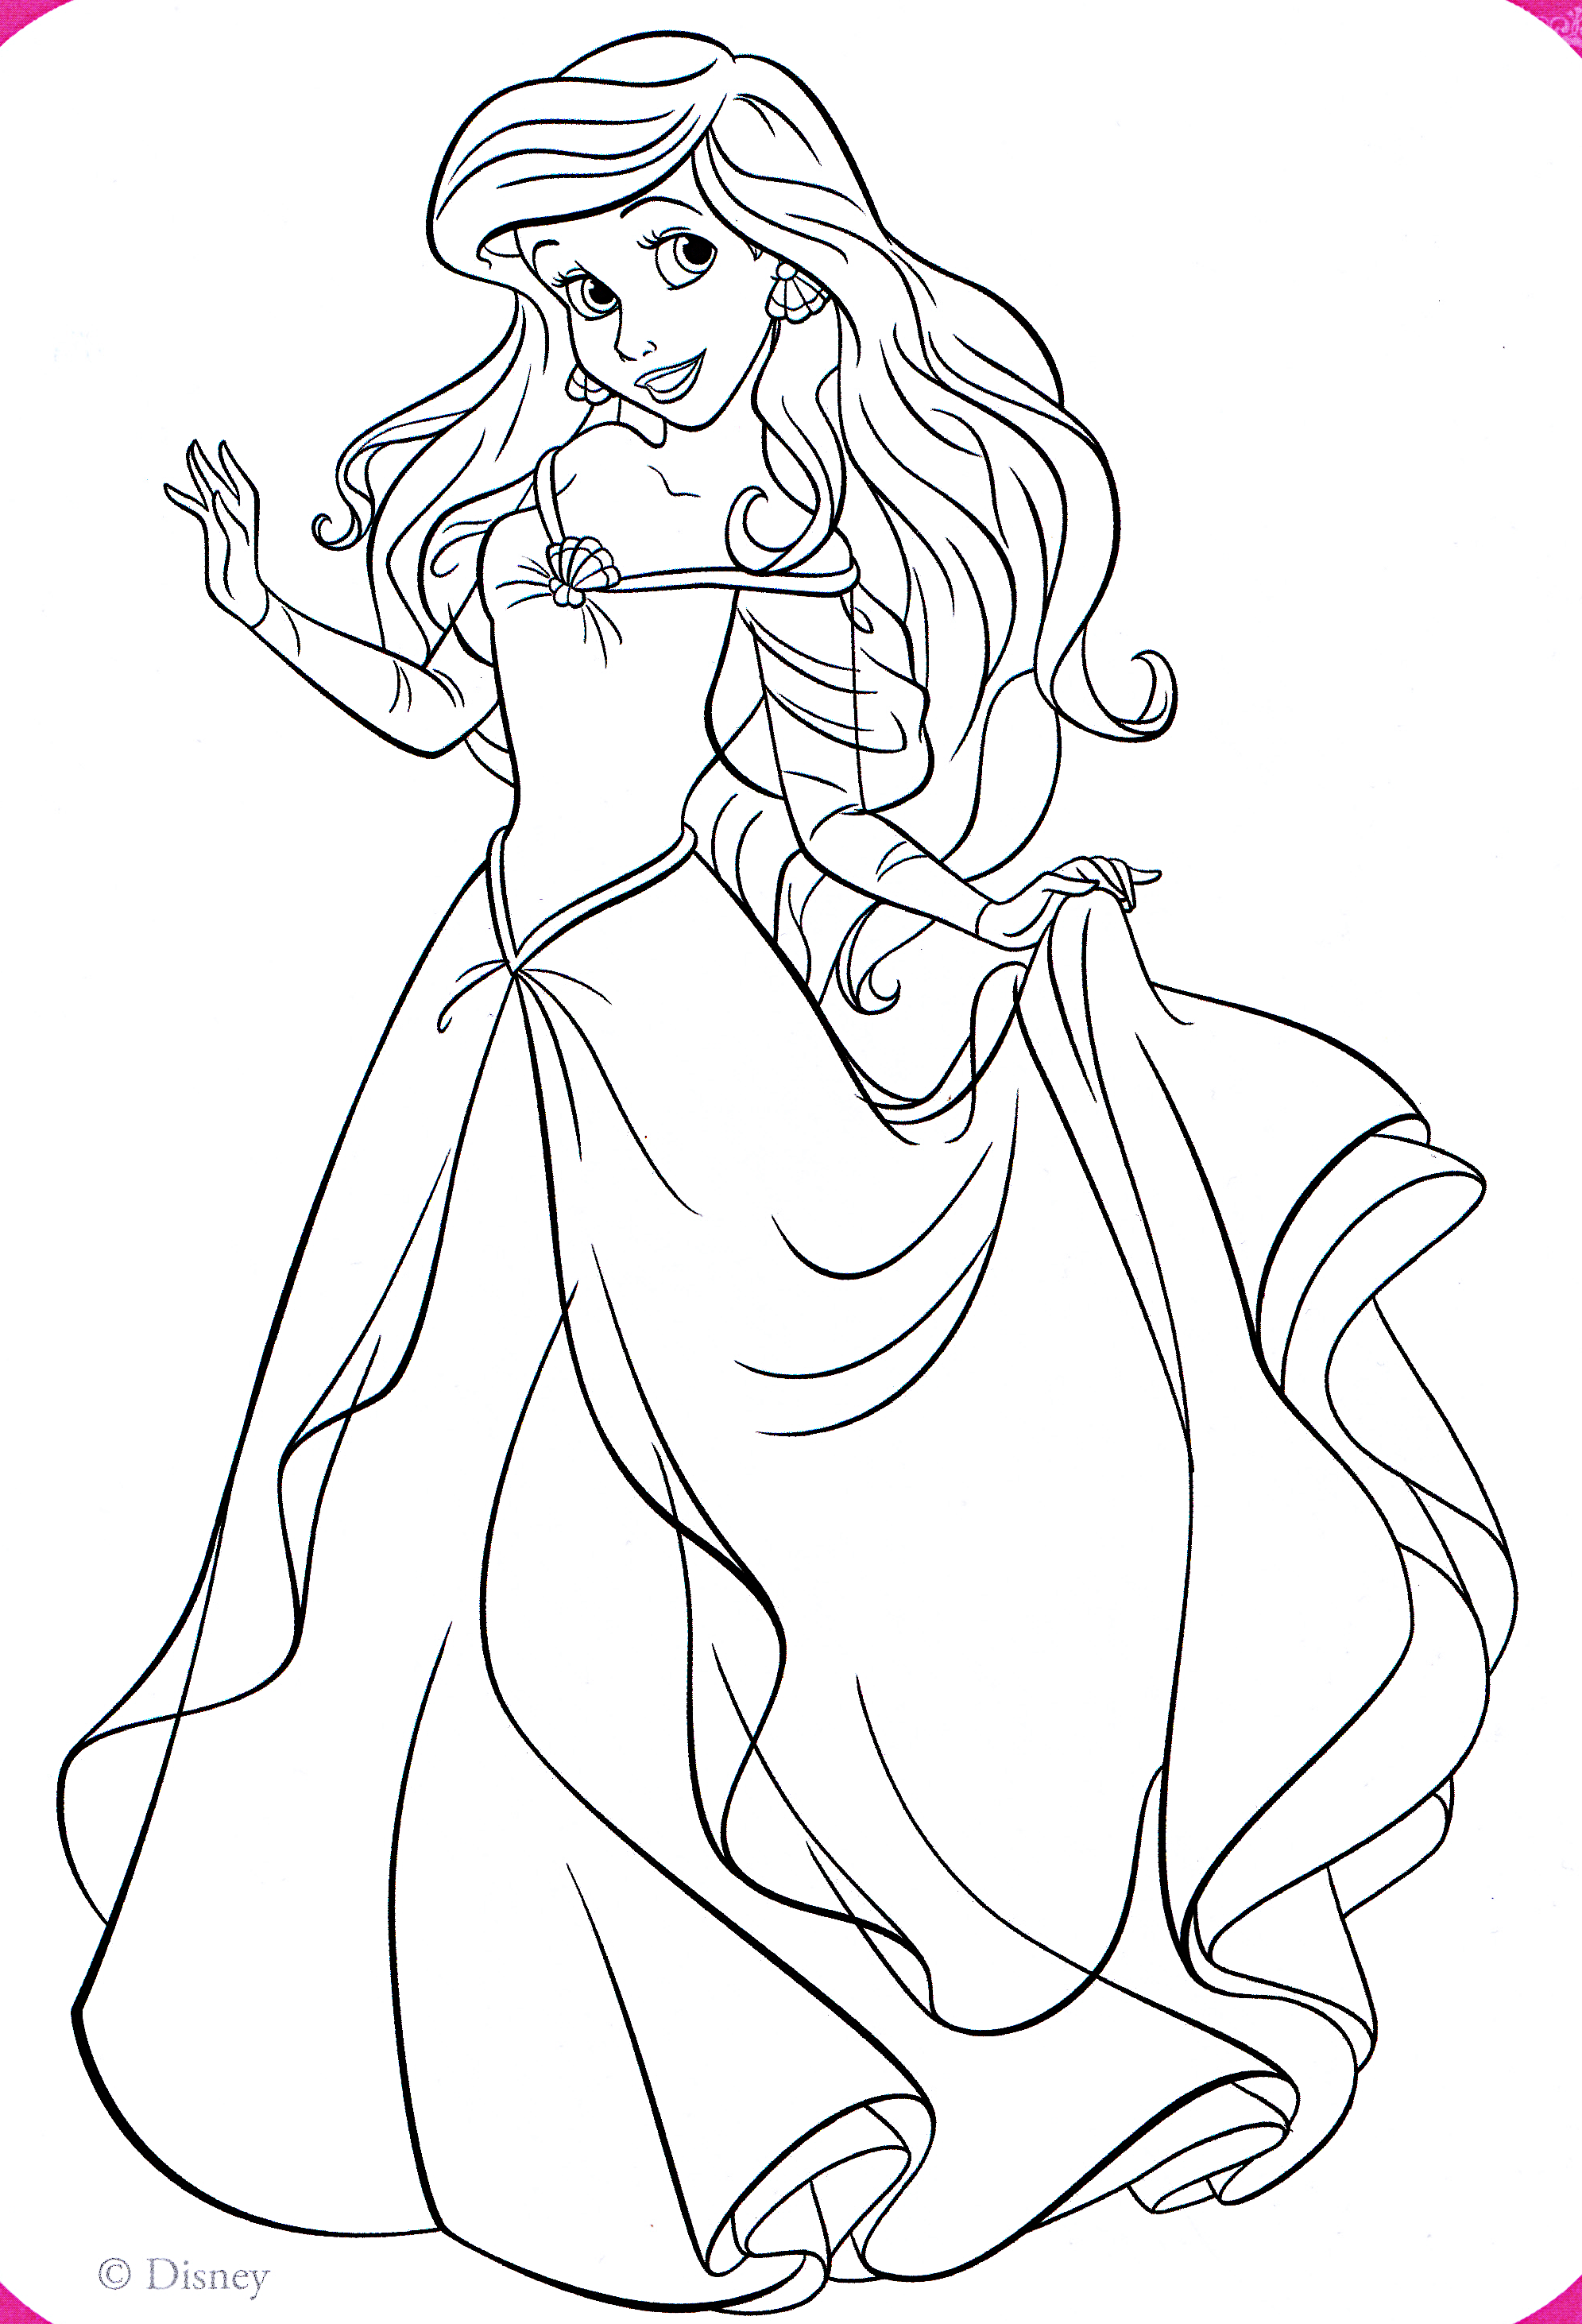 Coloring Pages Walt Disney : Disney junior coloring pages princess